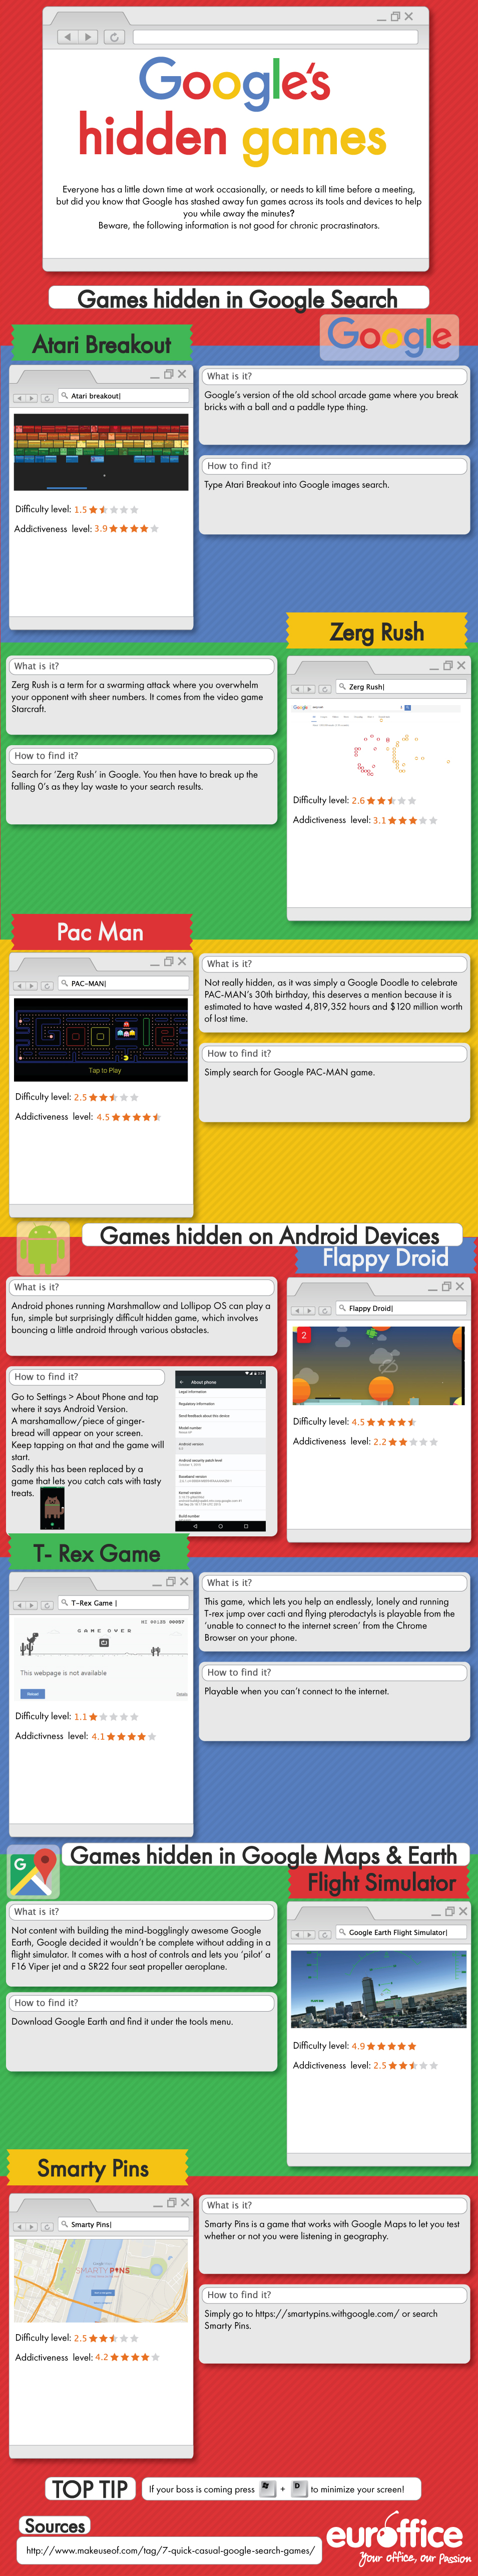 Google's Hidden Games [Infographic] | Social Media Today